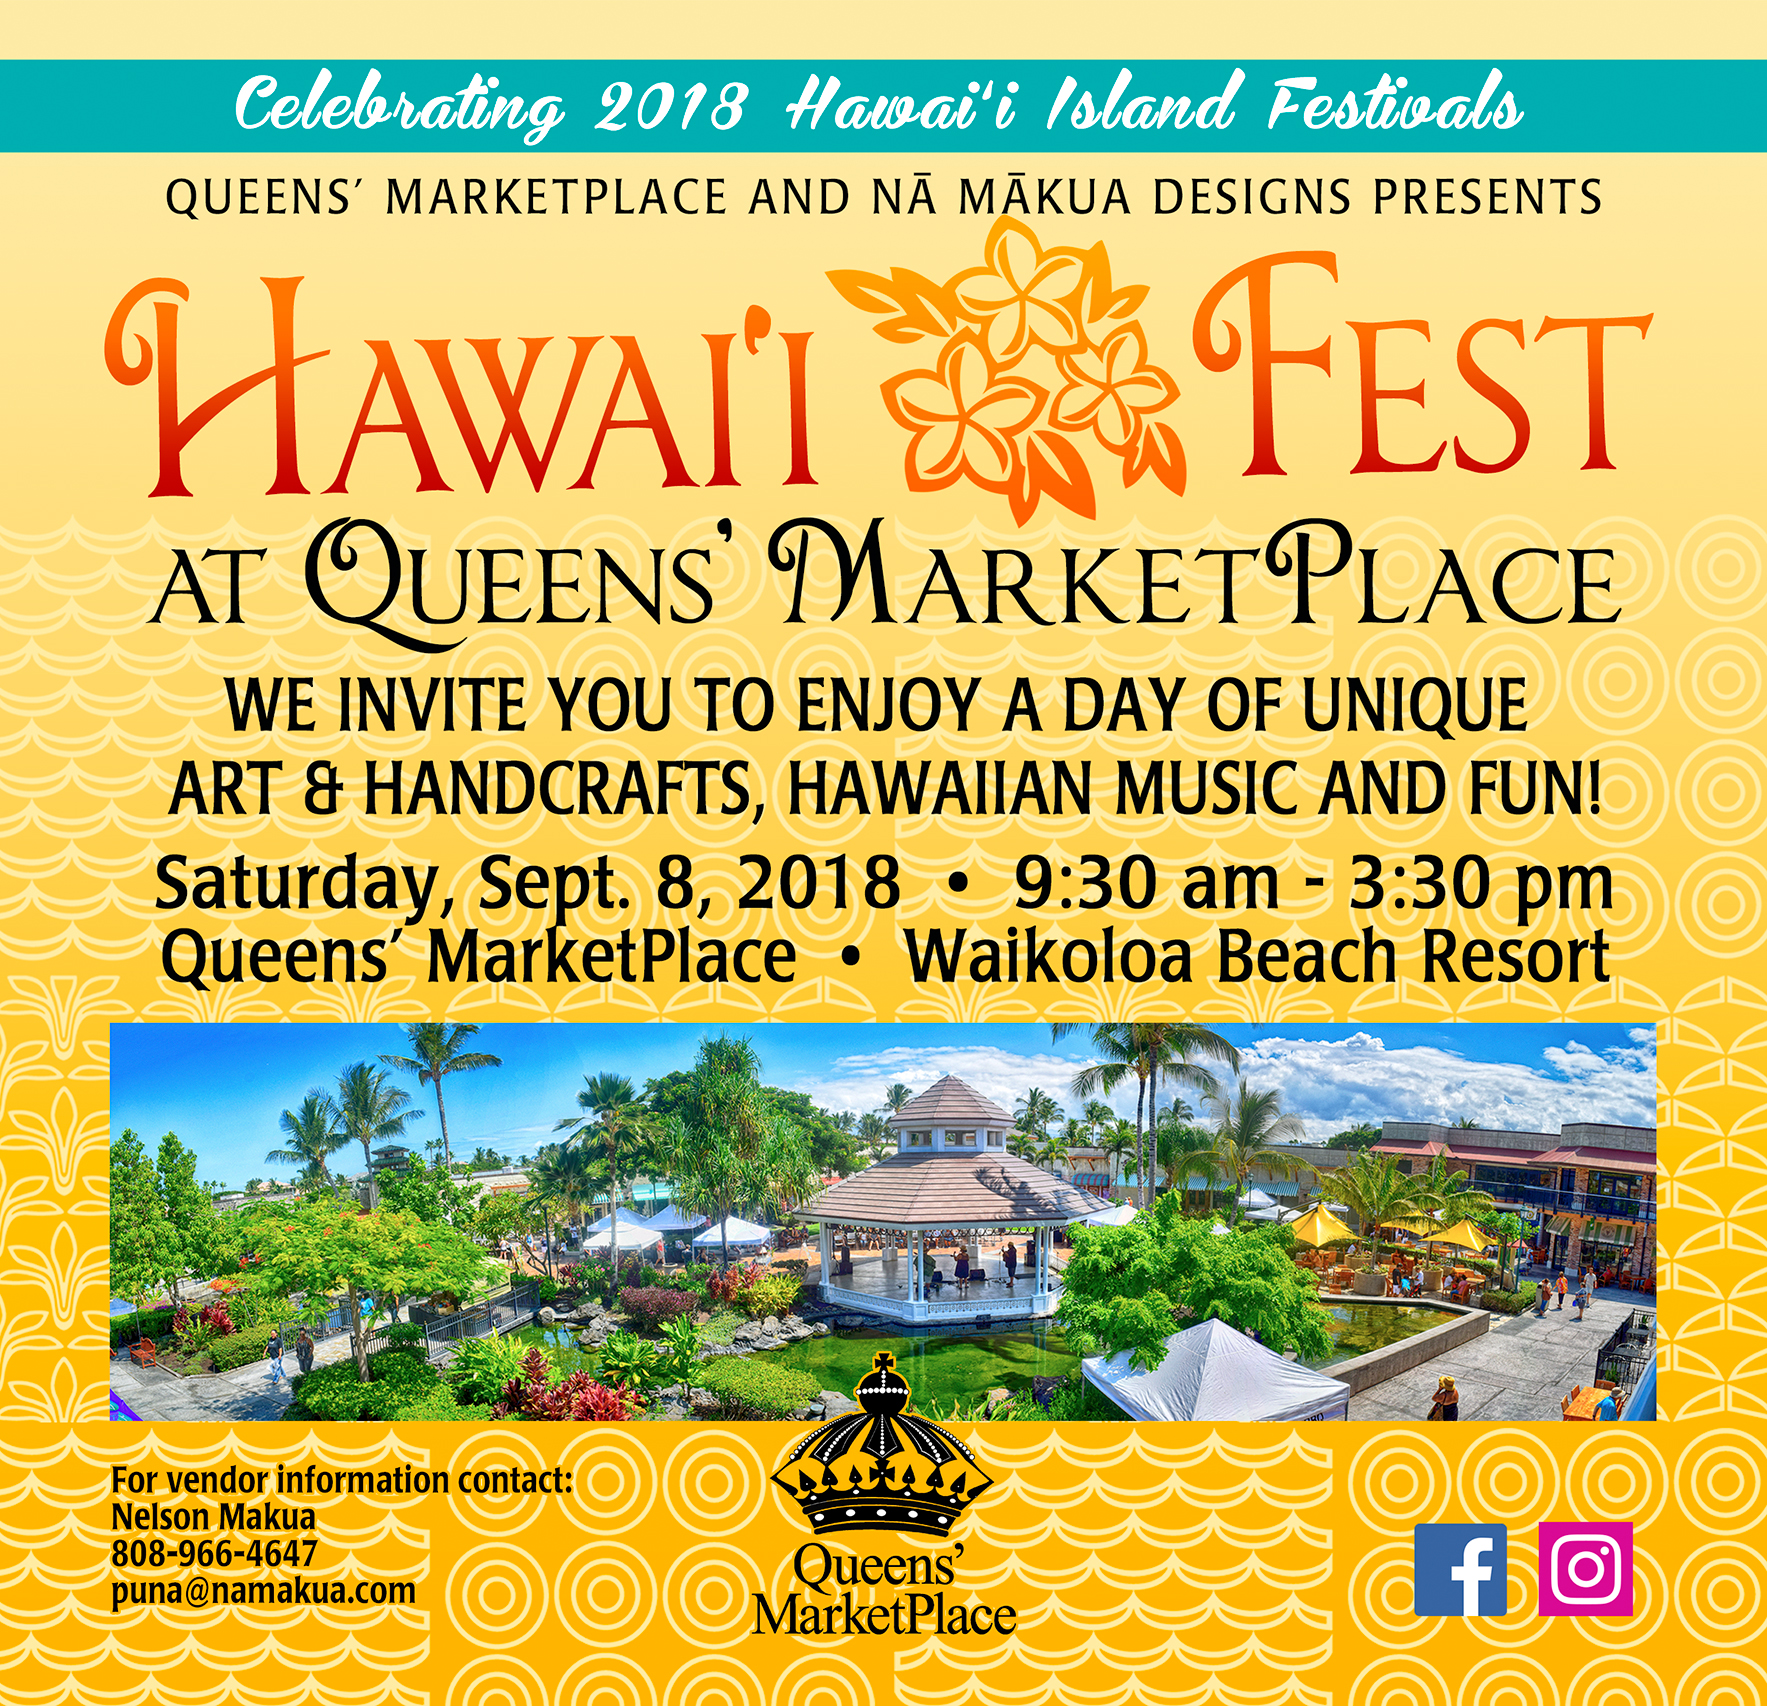 Hawai'i Fest at Queens' Marketplace